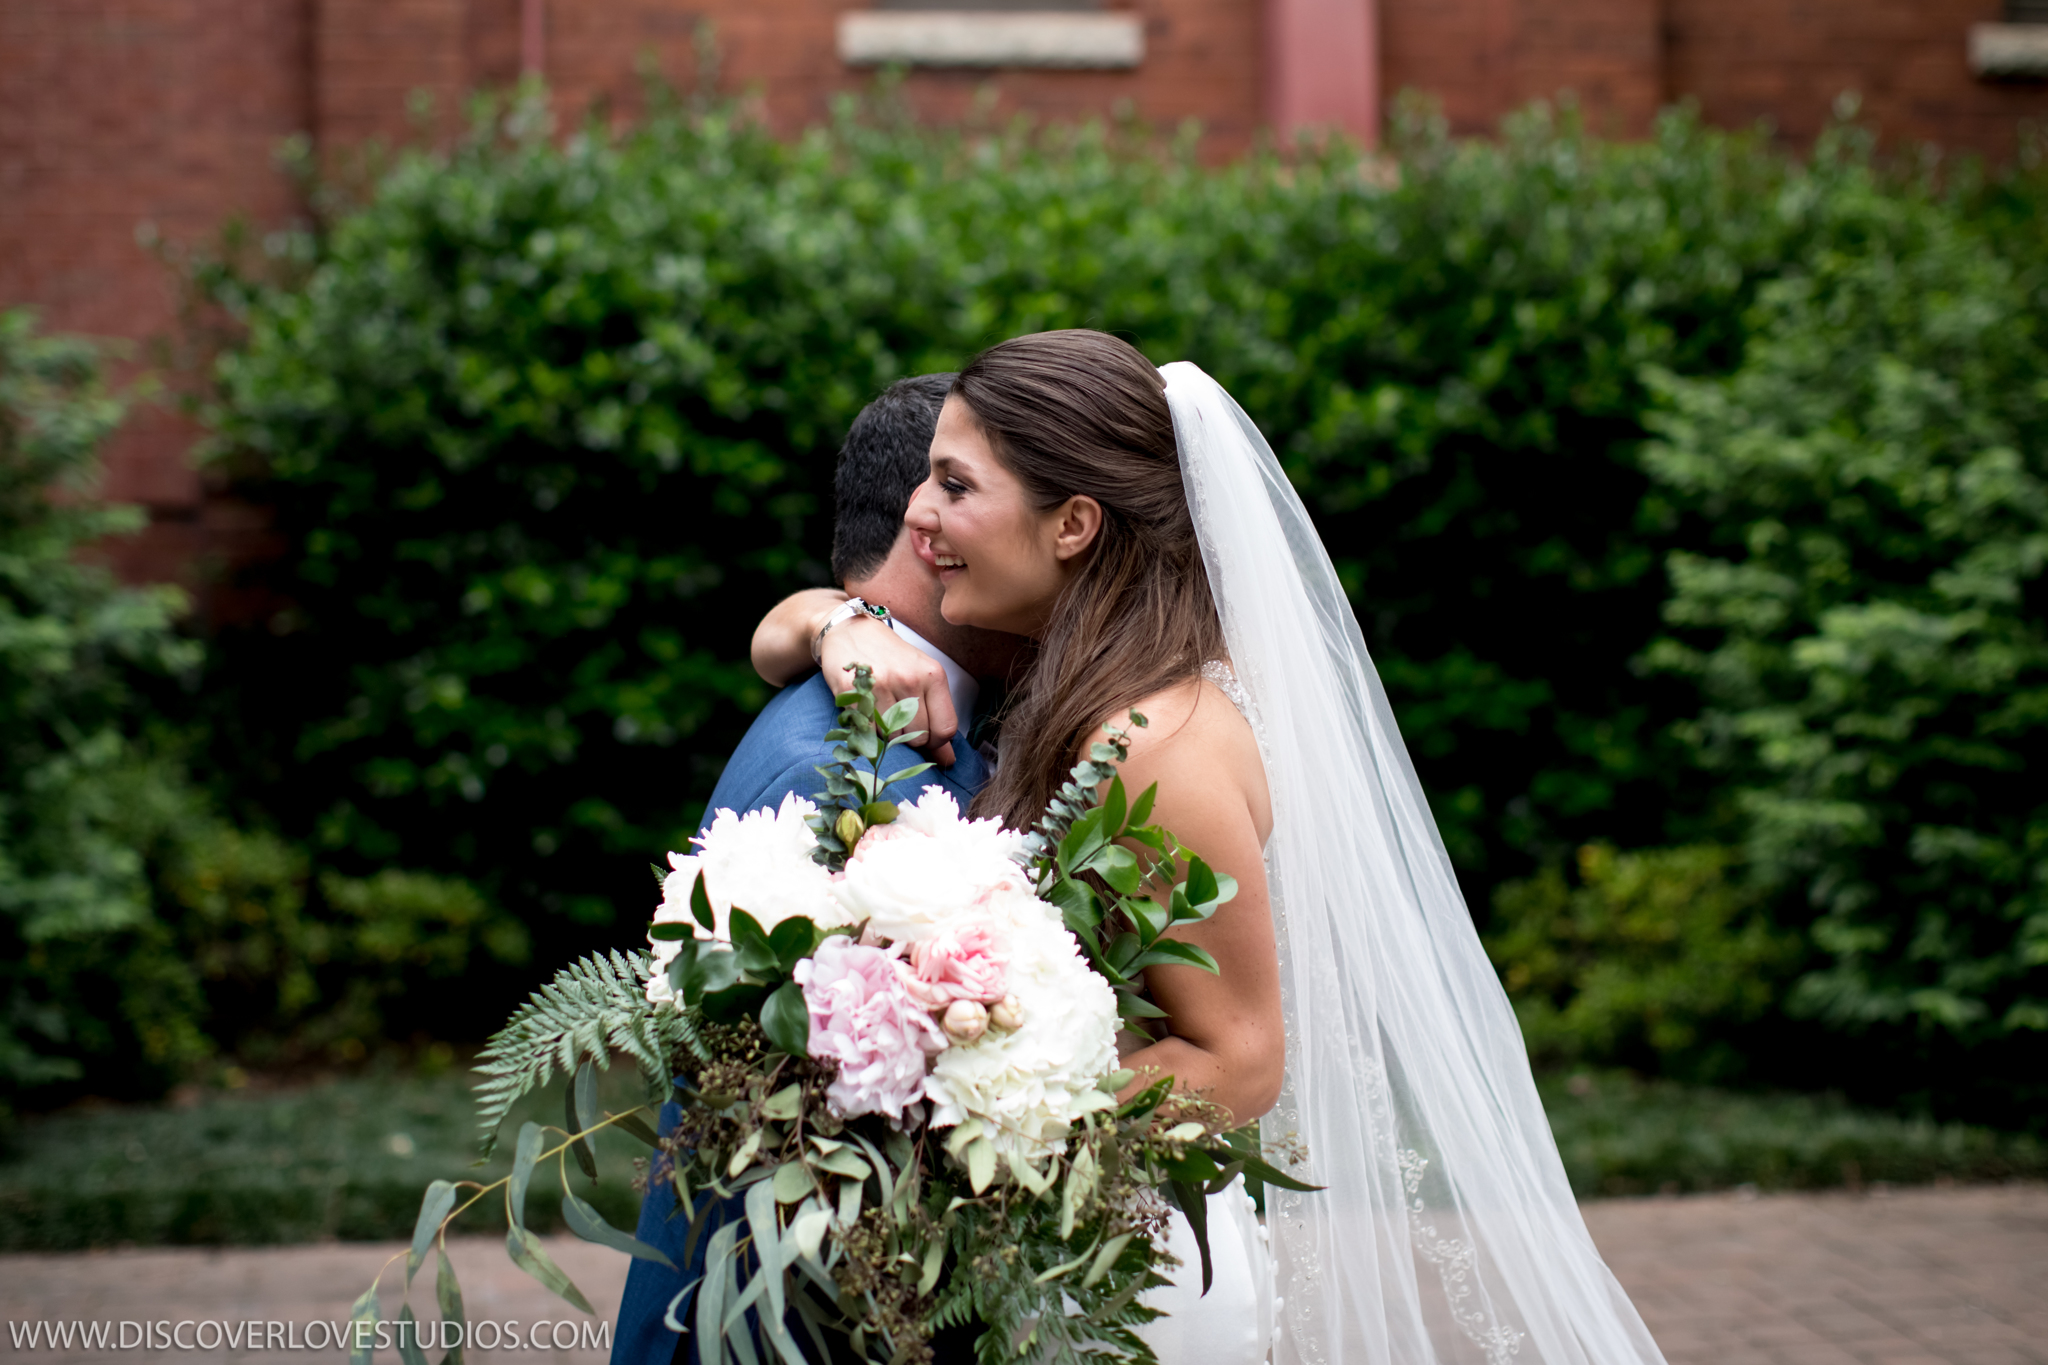 Bride and groom embrace after their first look in Uptown Charlotte captured by Discover Love Studios